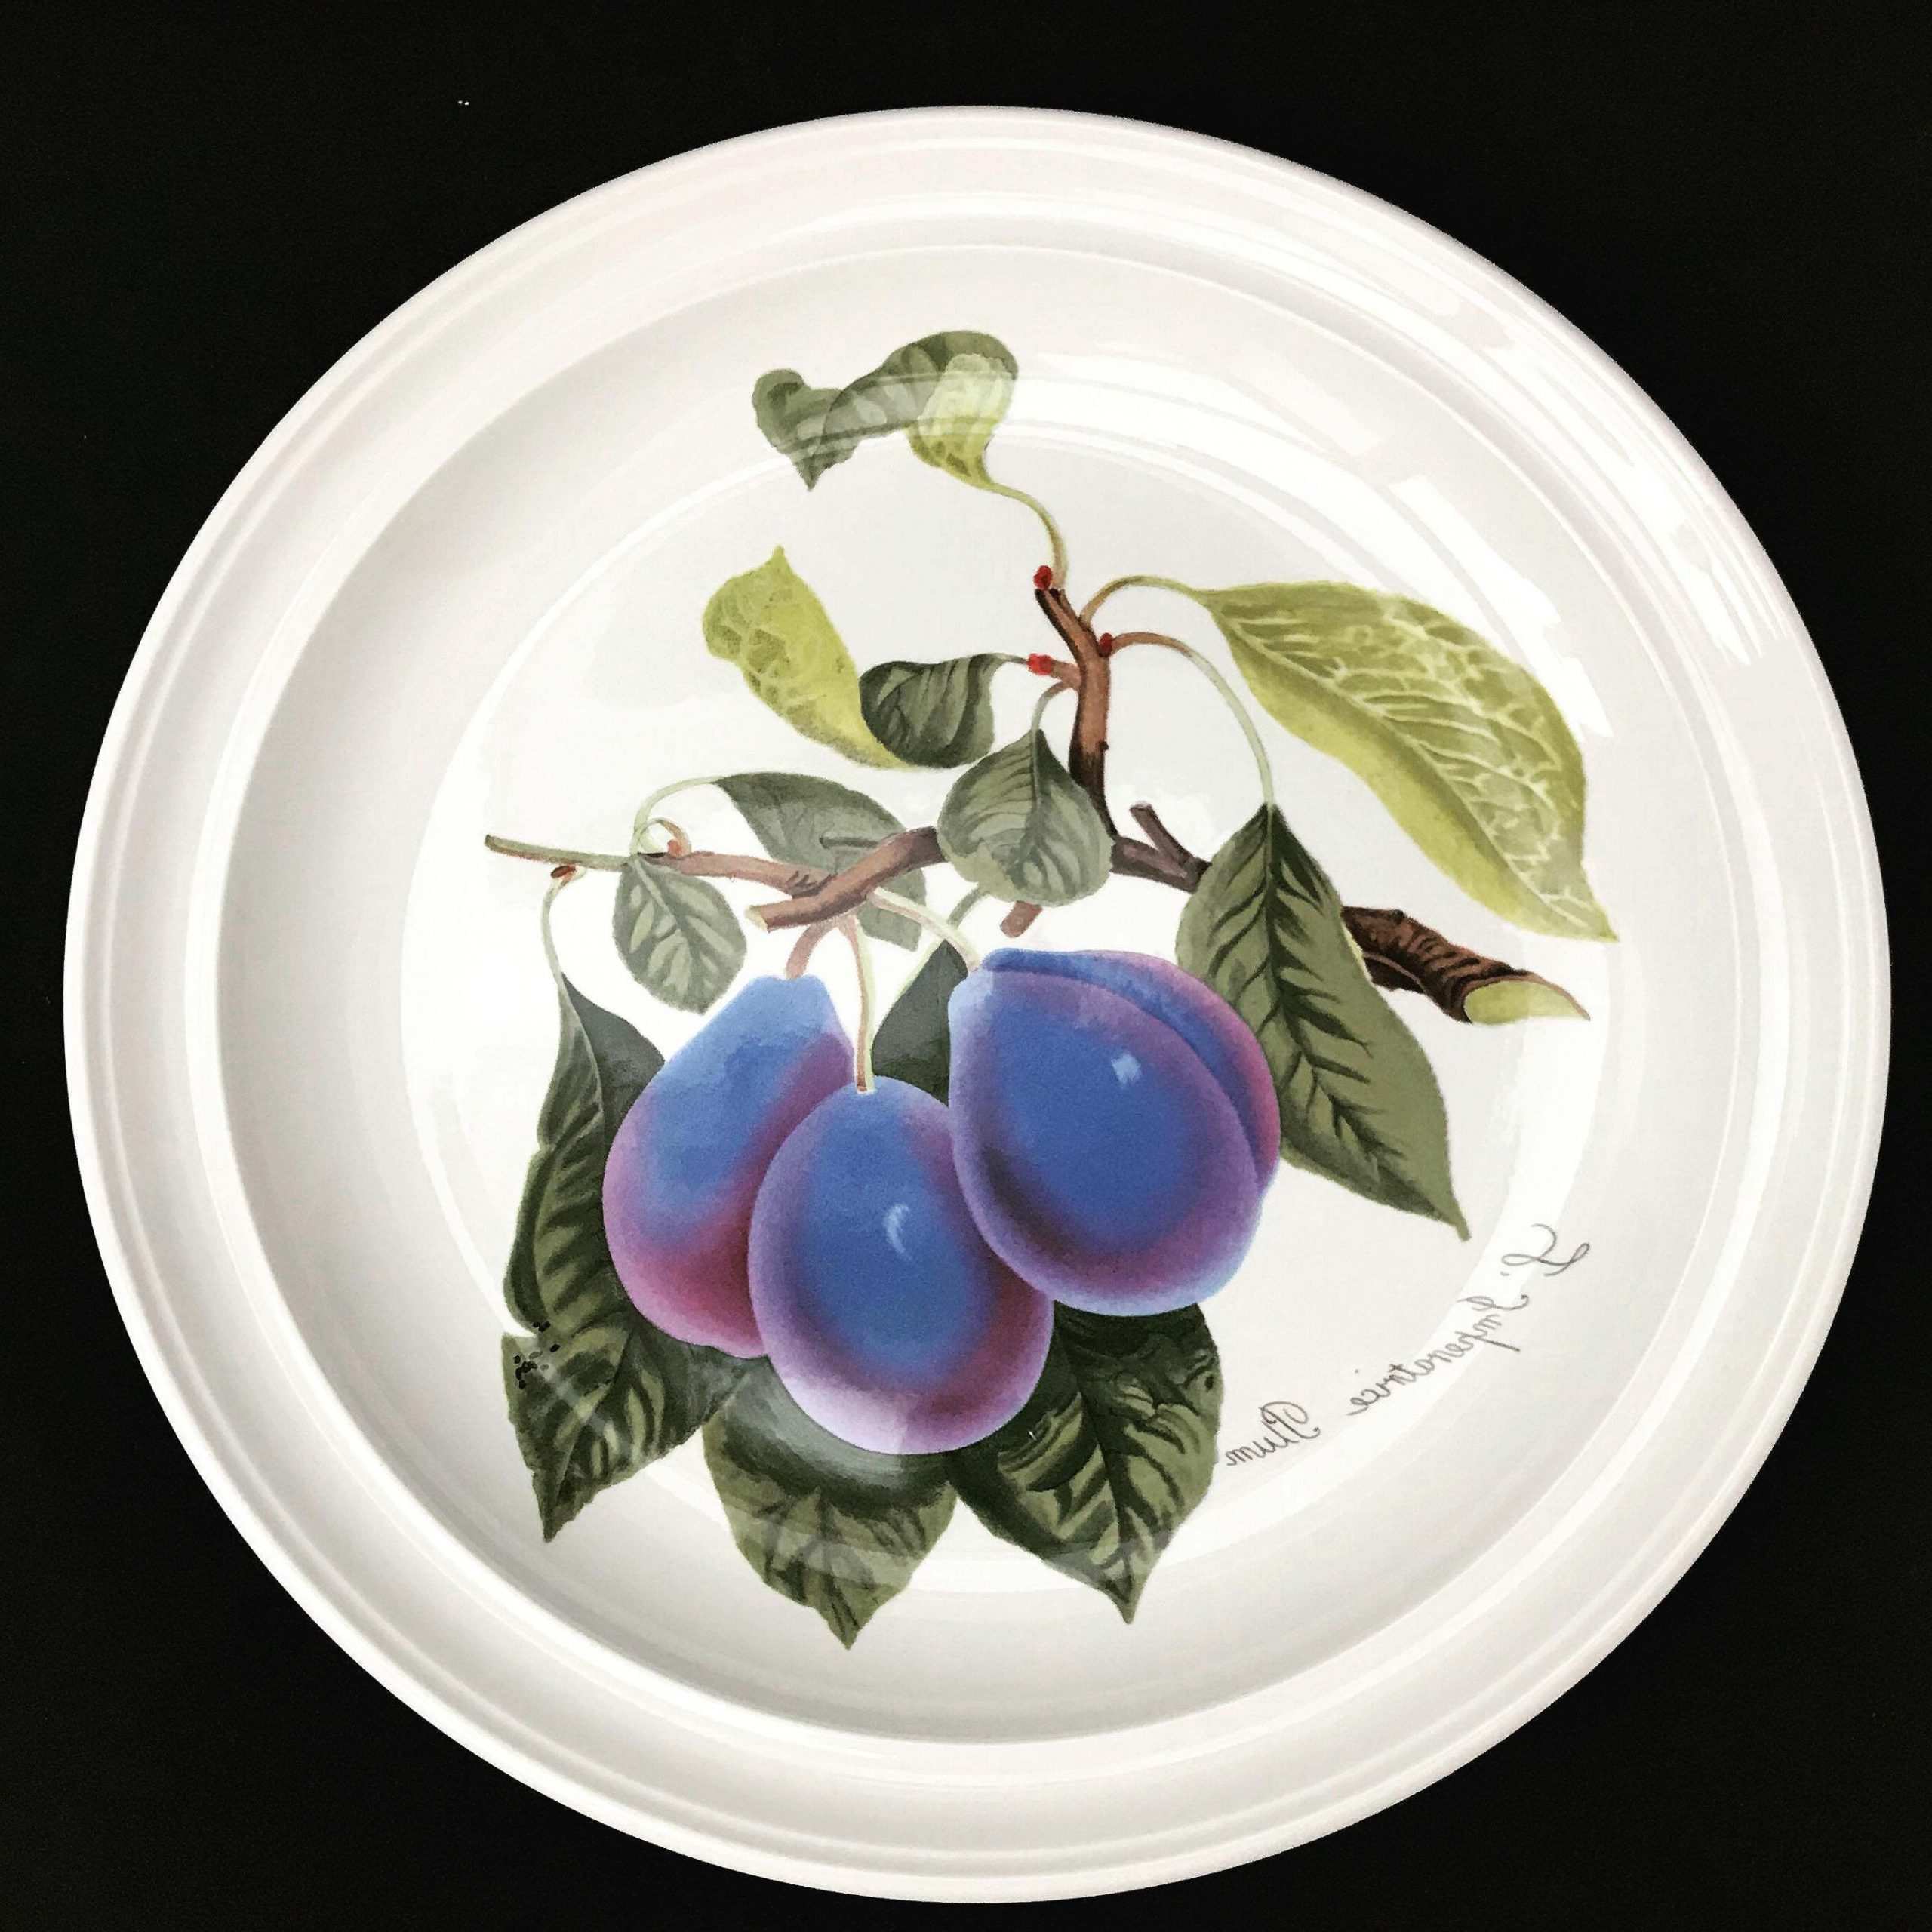 Famous Portmeirion Pomona Vintage Dinner Plate Or Cake Plate Plum Cherries Grapes  Gooseberries Gift Collector Service Plate Grimwoods Royal George Intended For Portmeirion Armchairs (View 17 of 20)